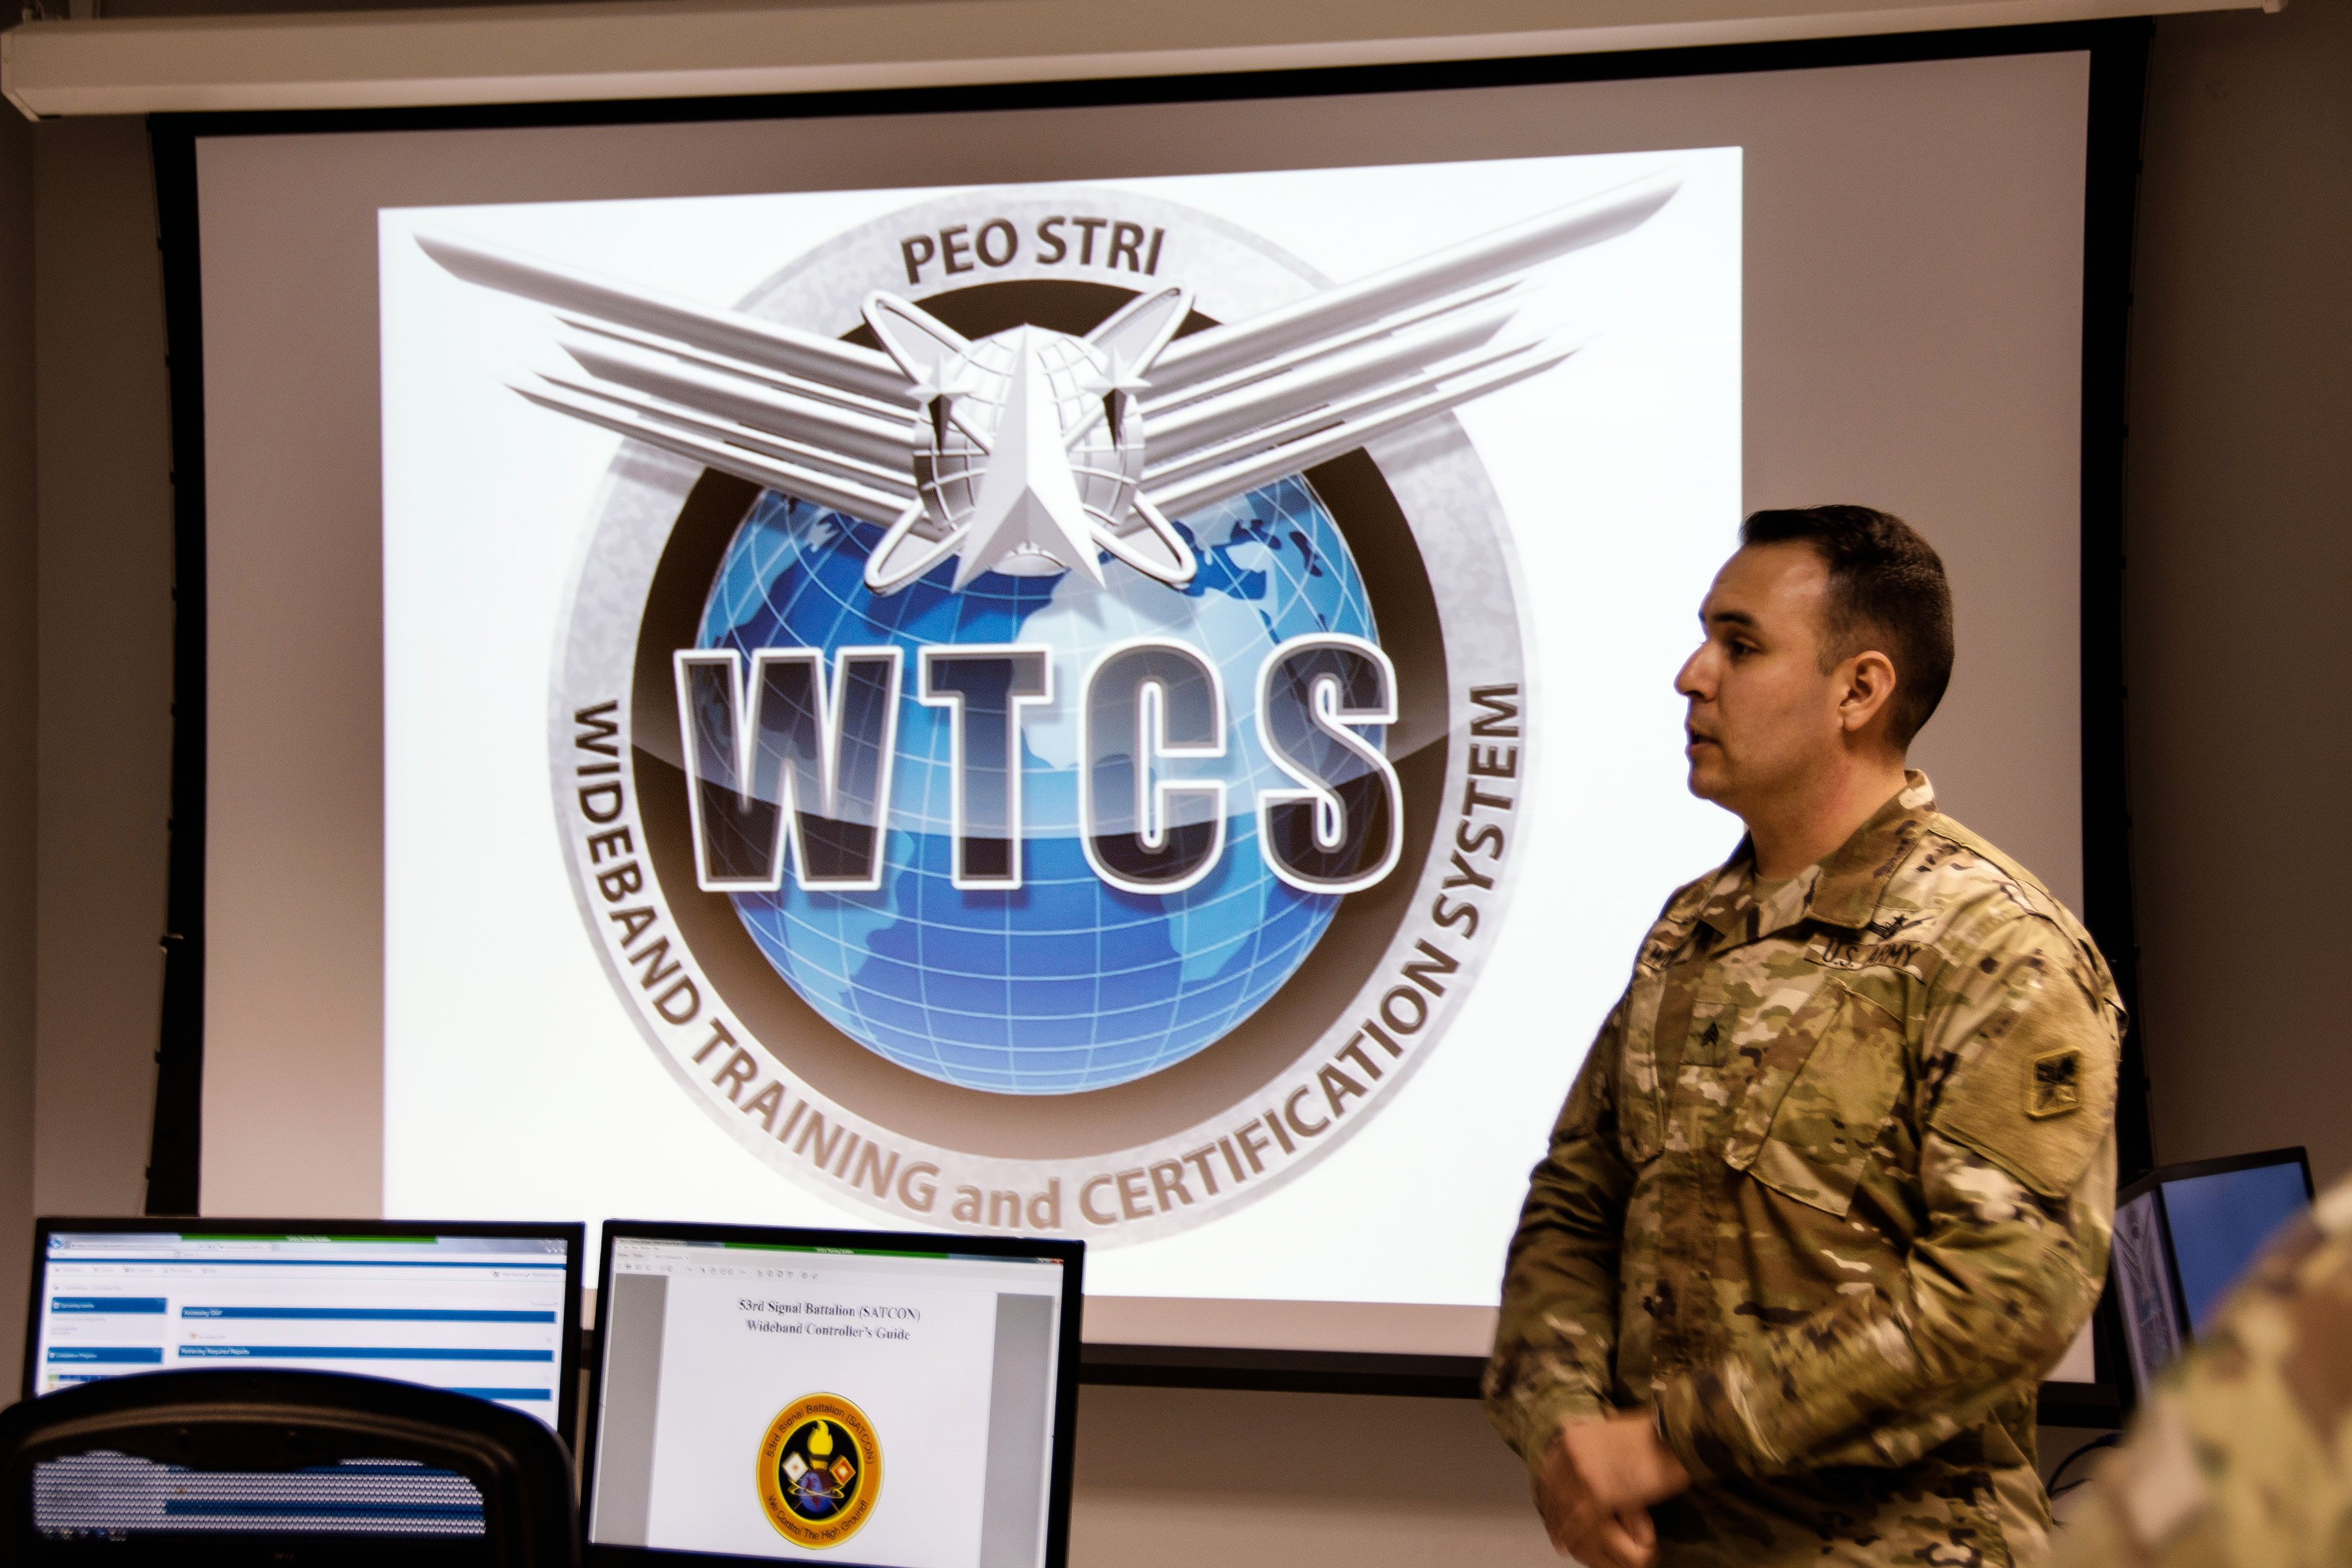 WTCS instructor